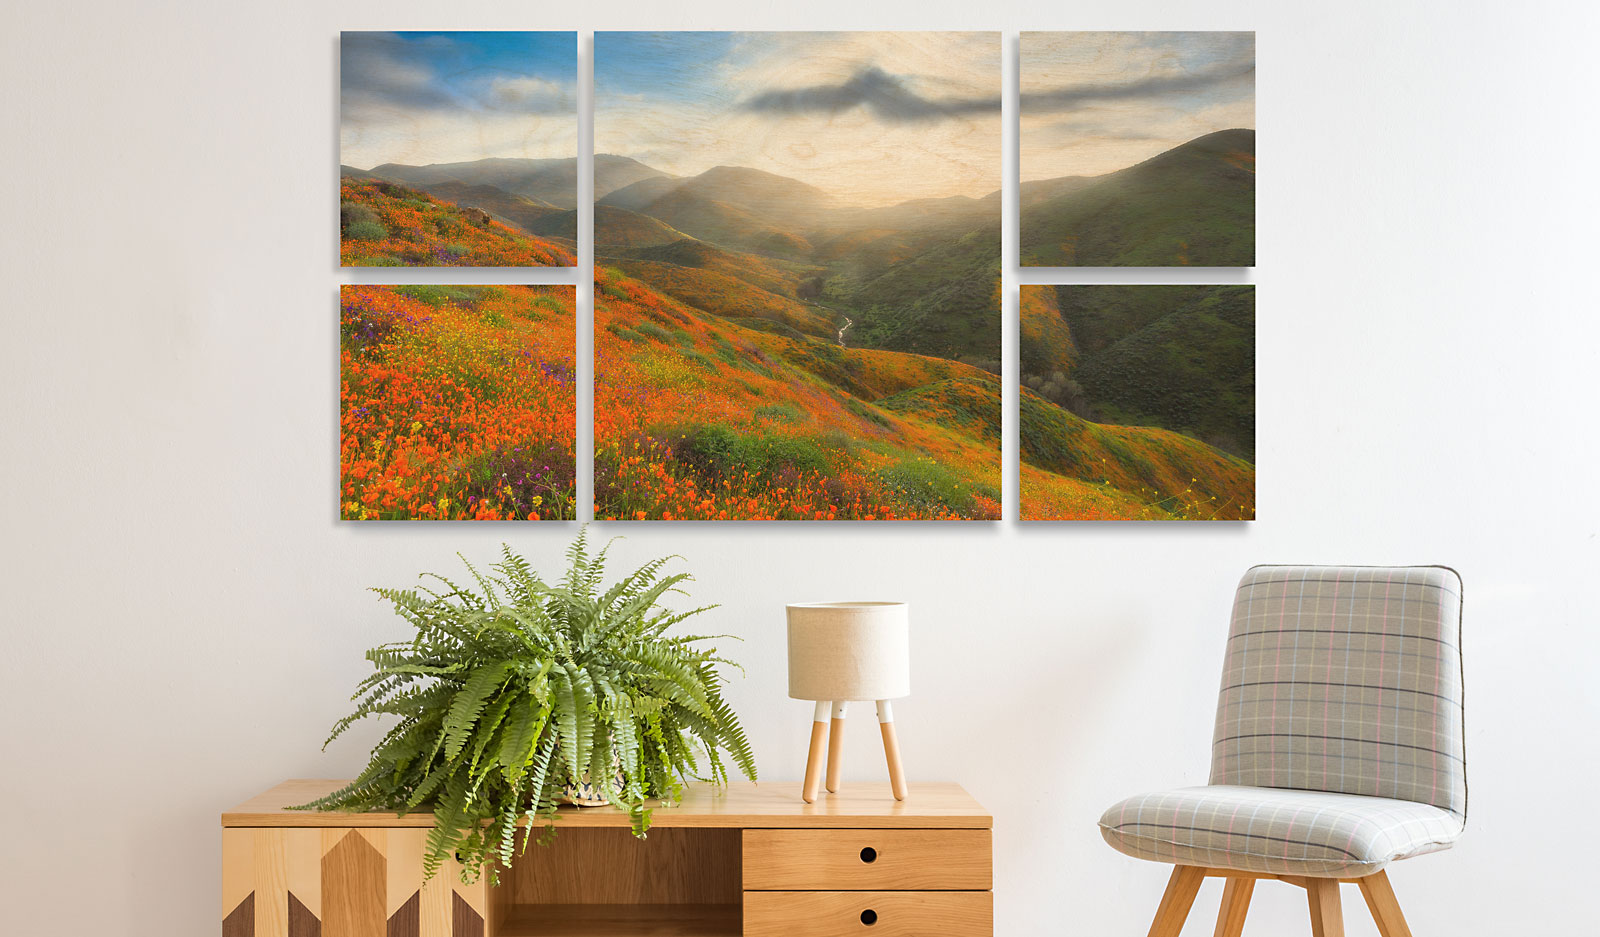 Wall Clusters & Splits - Wall Displays Featuring Your Images on Maple Wood Prints